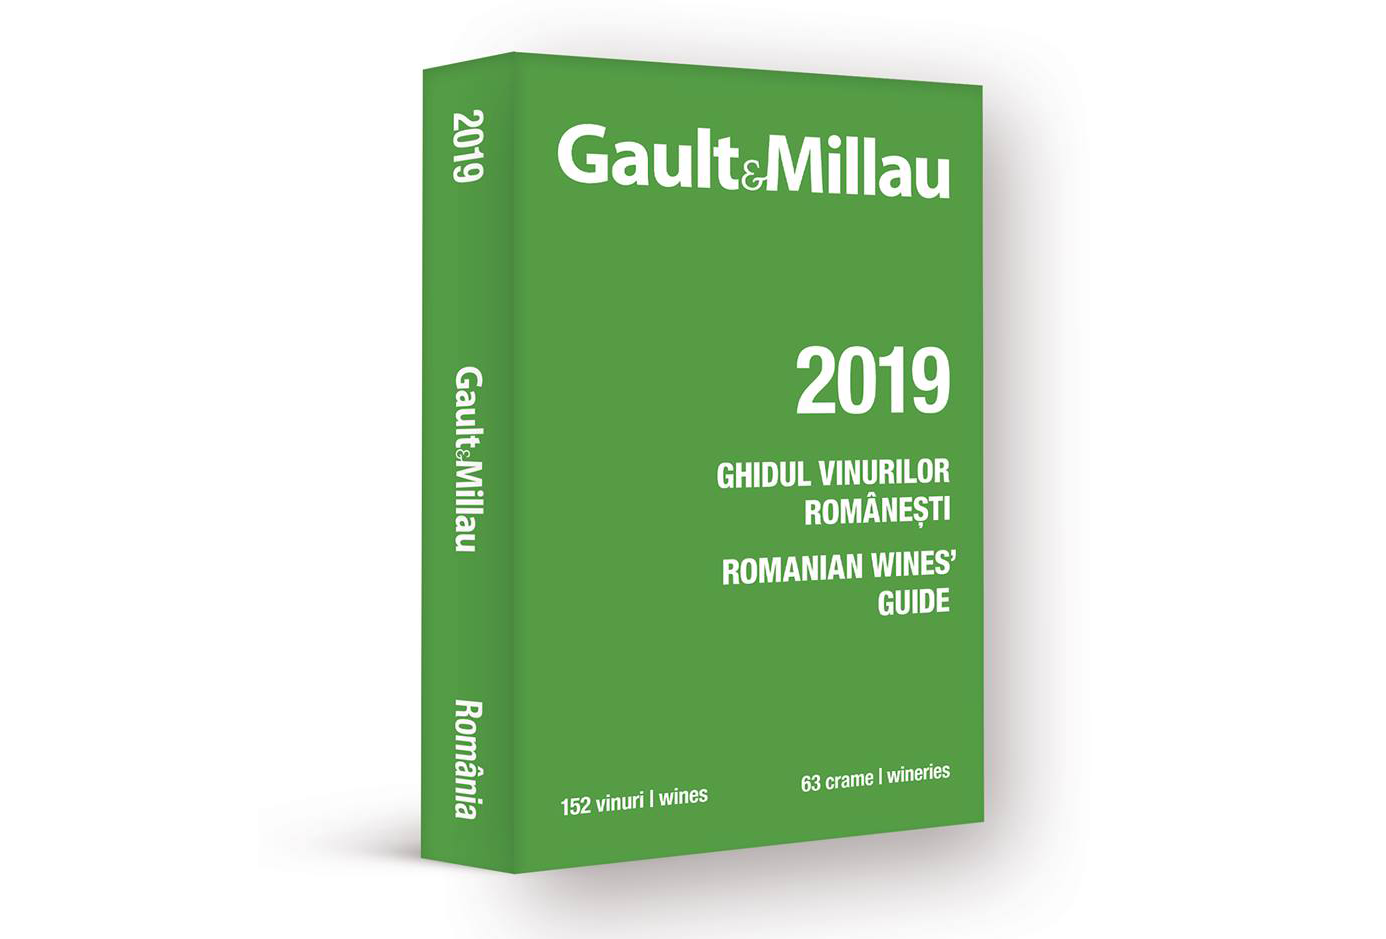 gault millau wine guide romania 2019